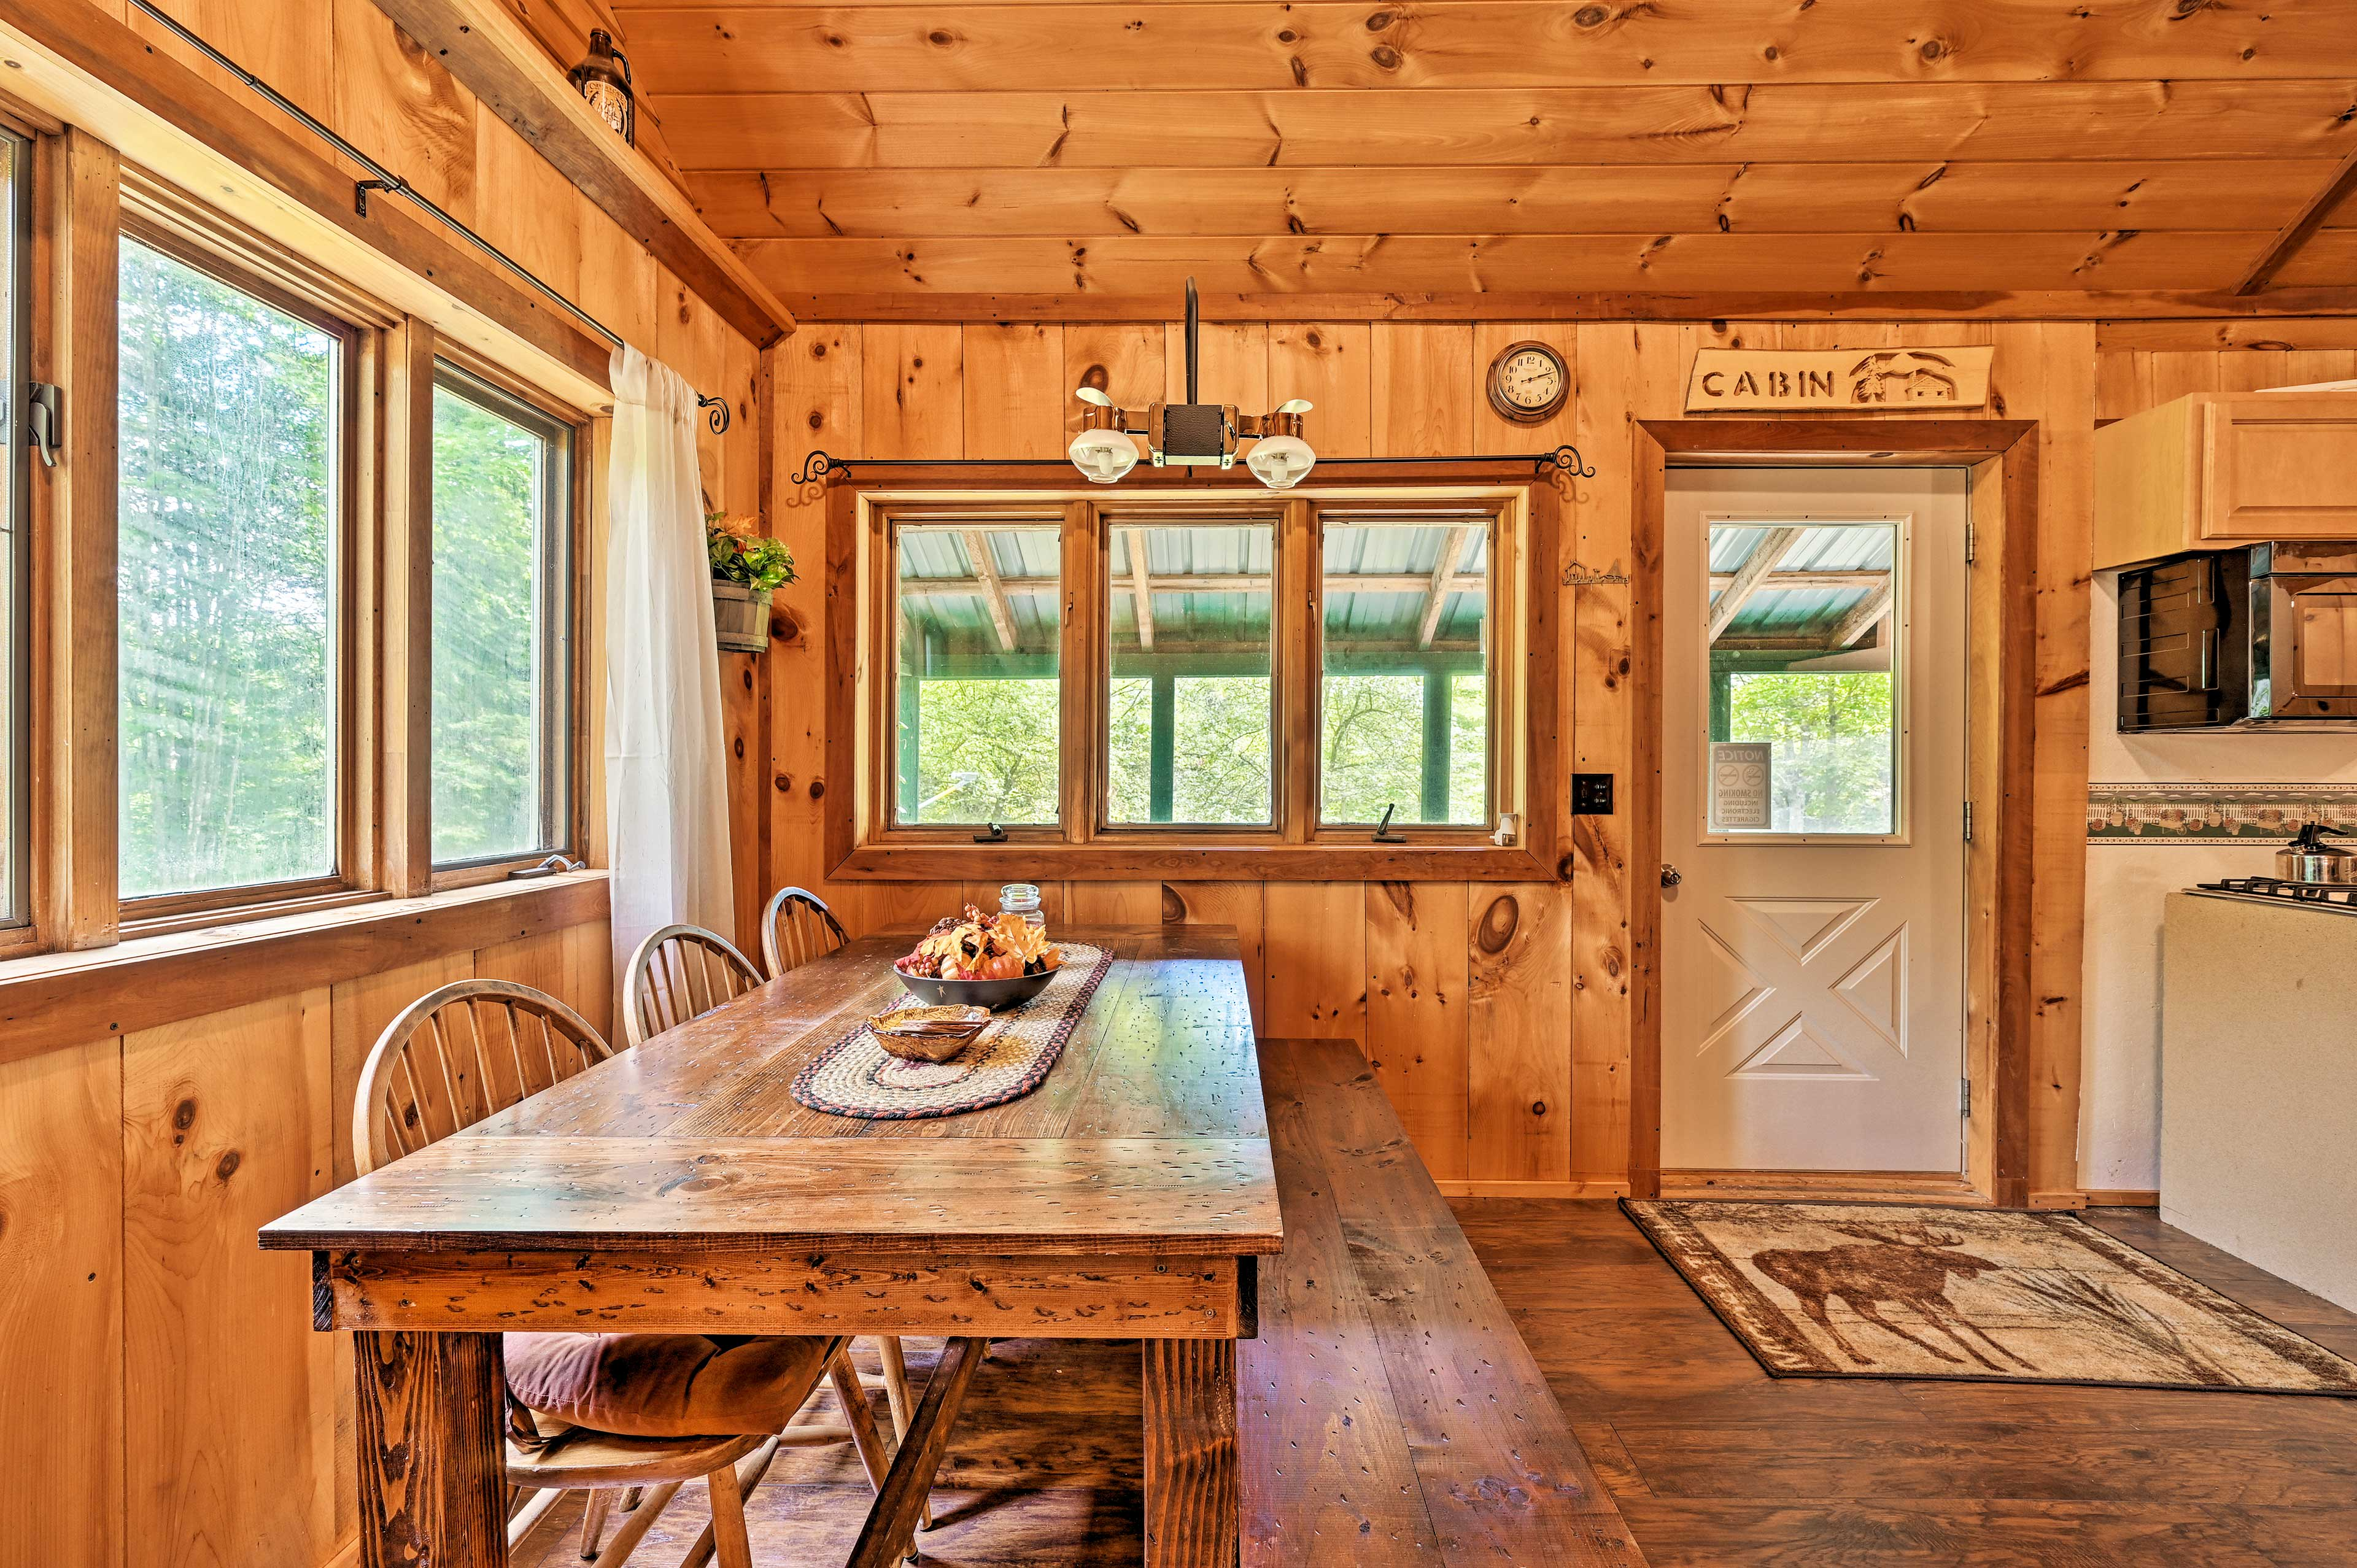 Host your family-style meals at the wooden table.